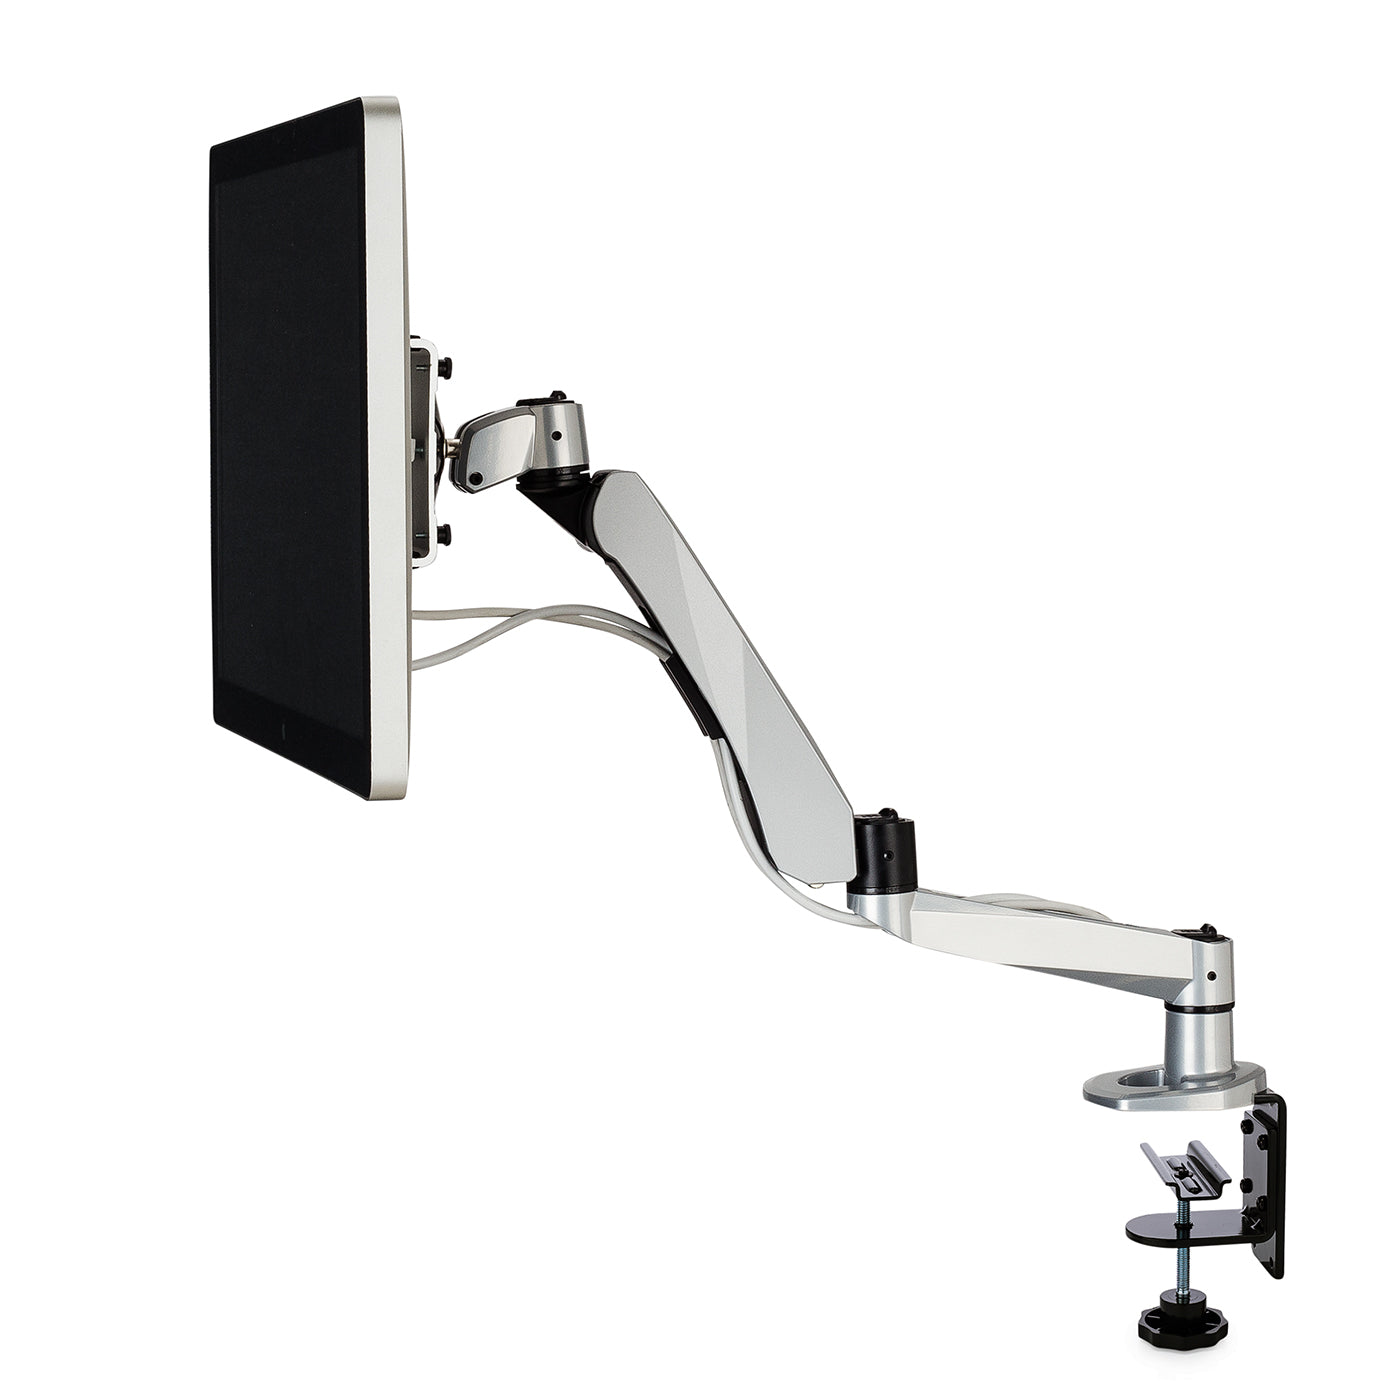 XT-Series Single Monitor Display Mounting Arm